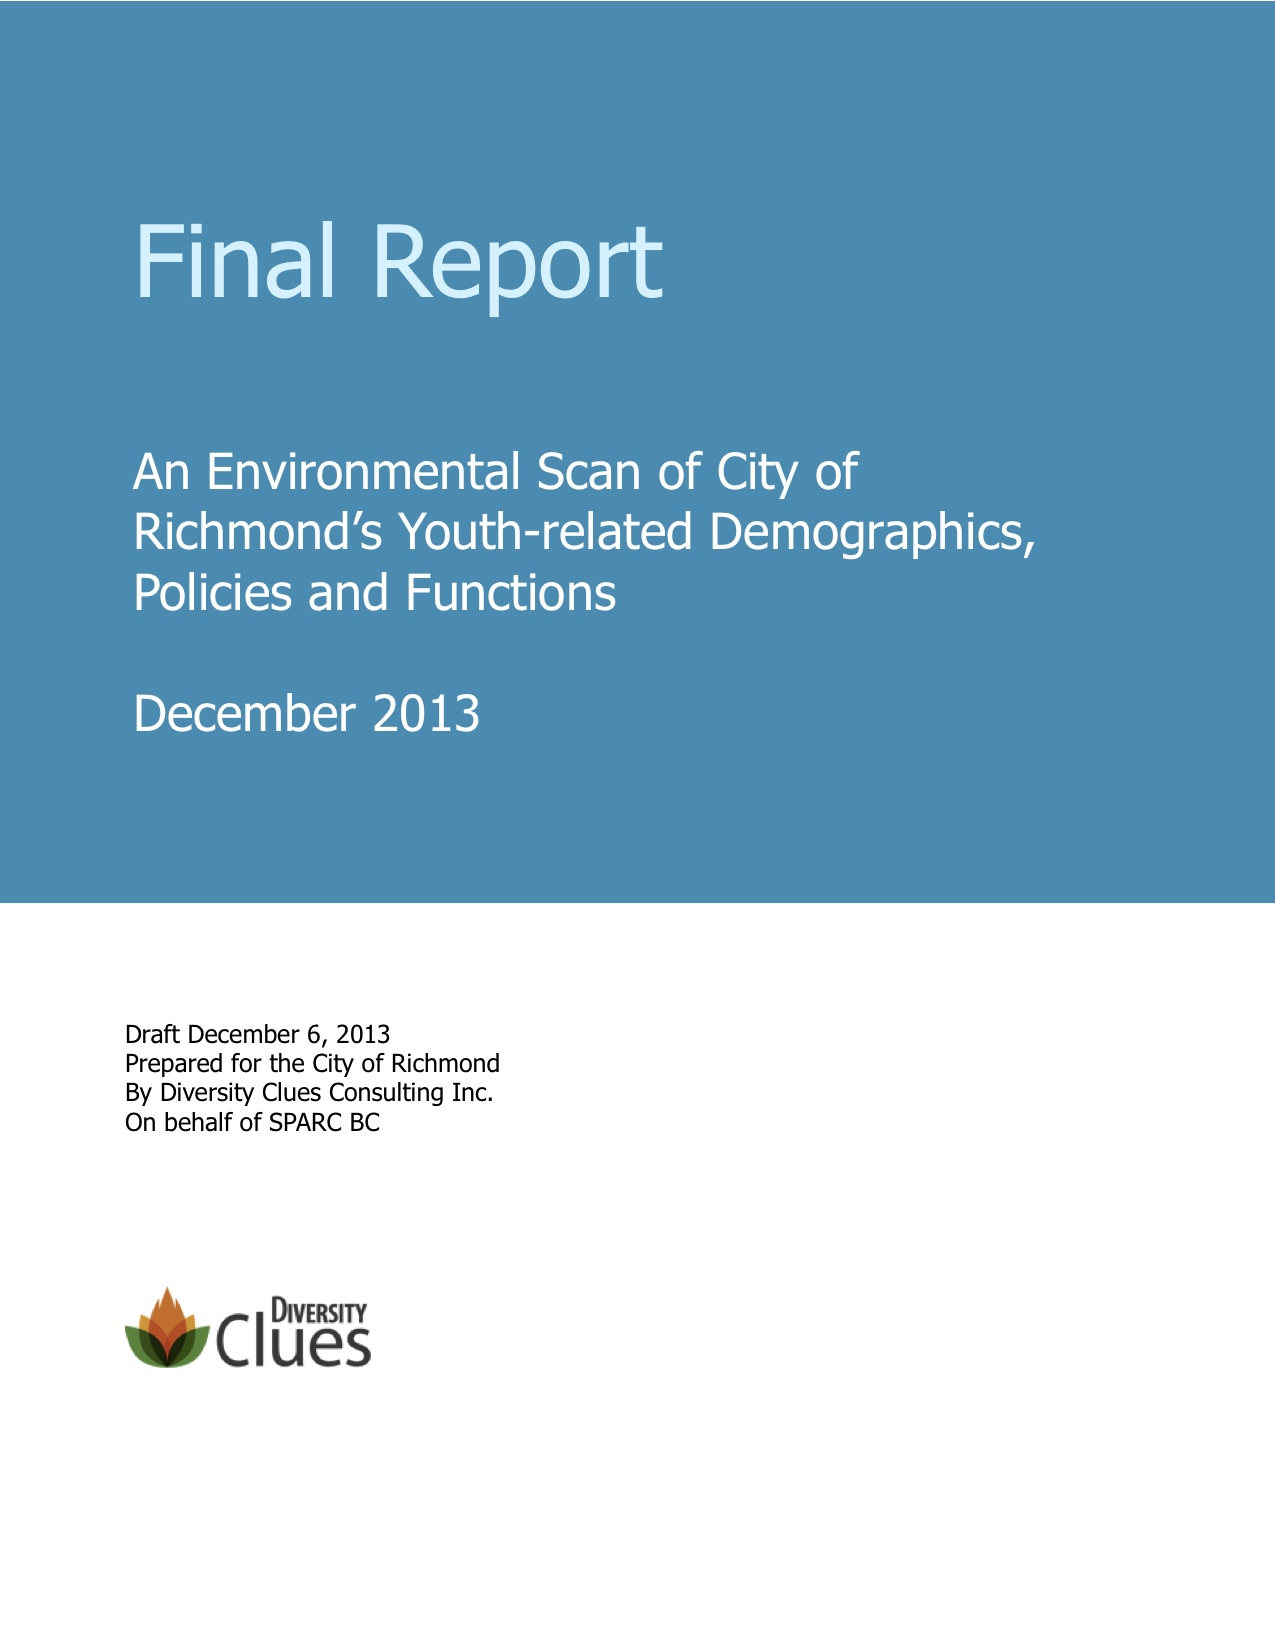 Foundation Report An Environmental Scan of City of Richmonds – Consulting Report